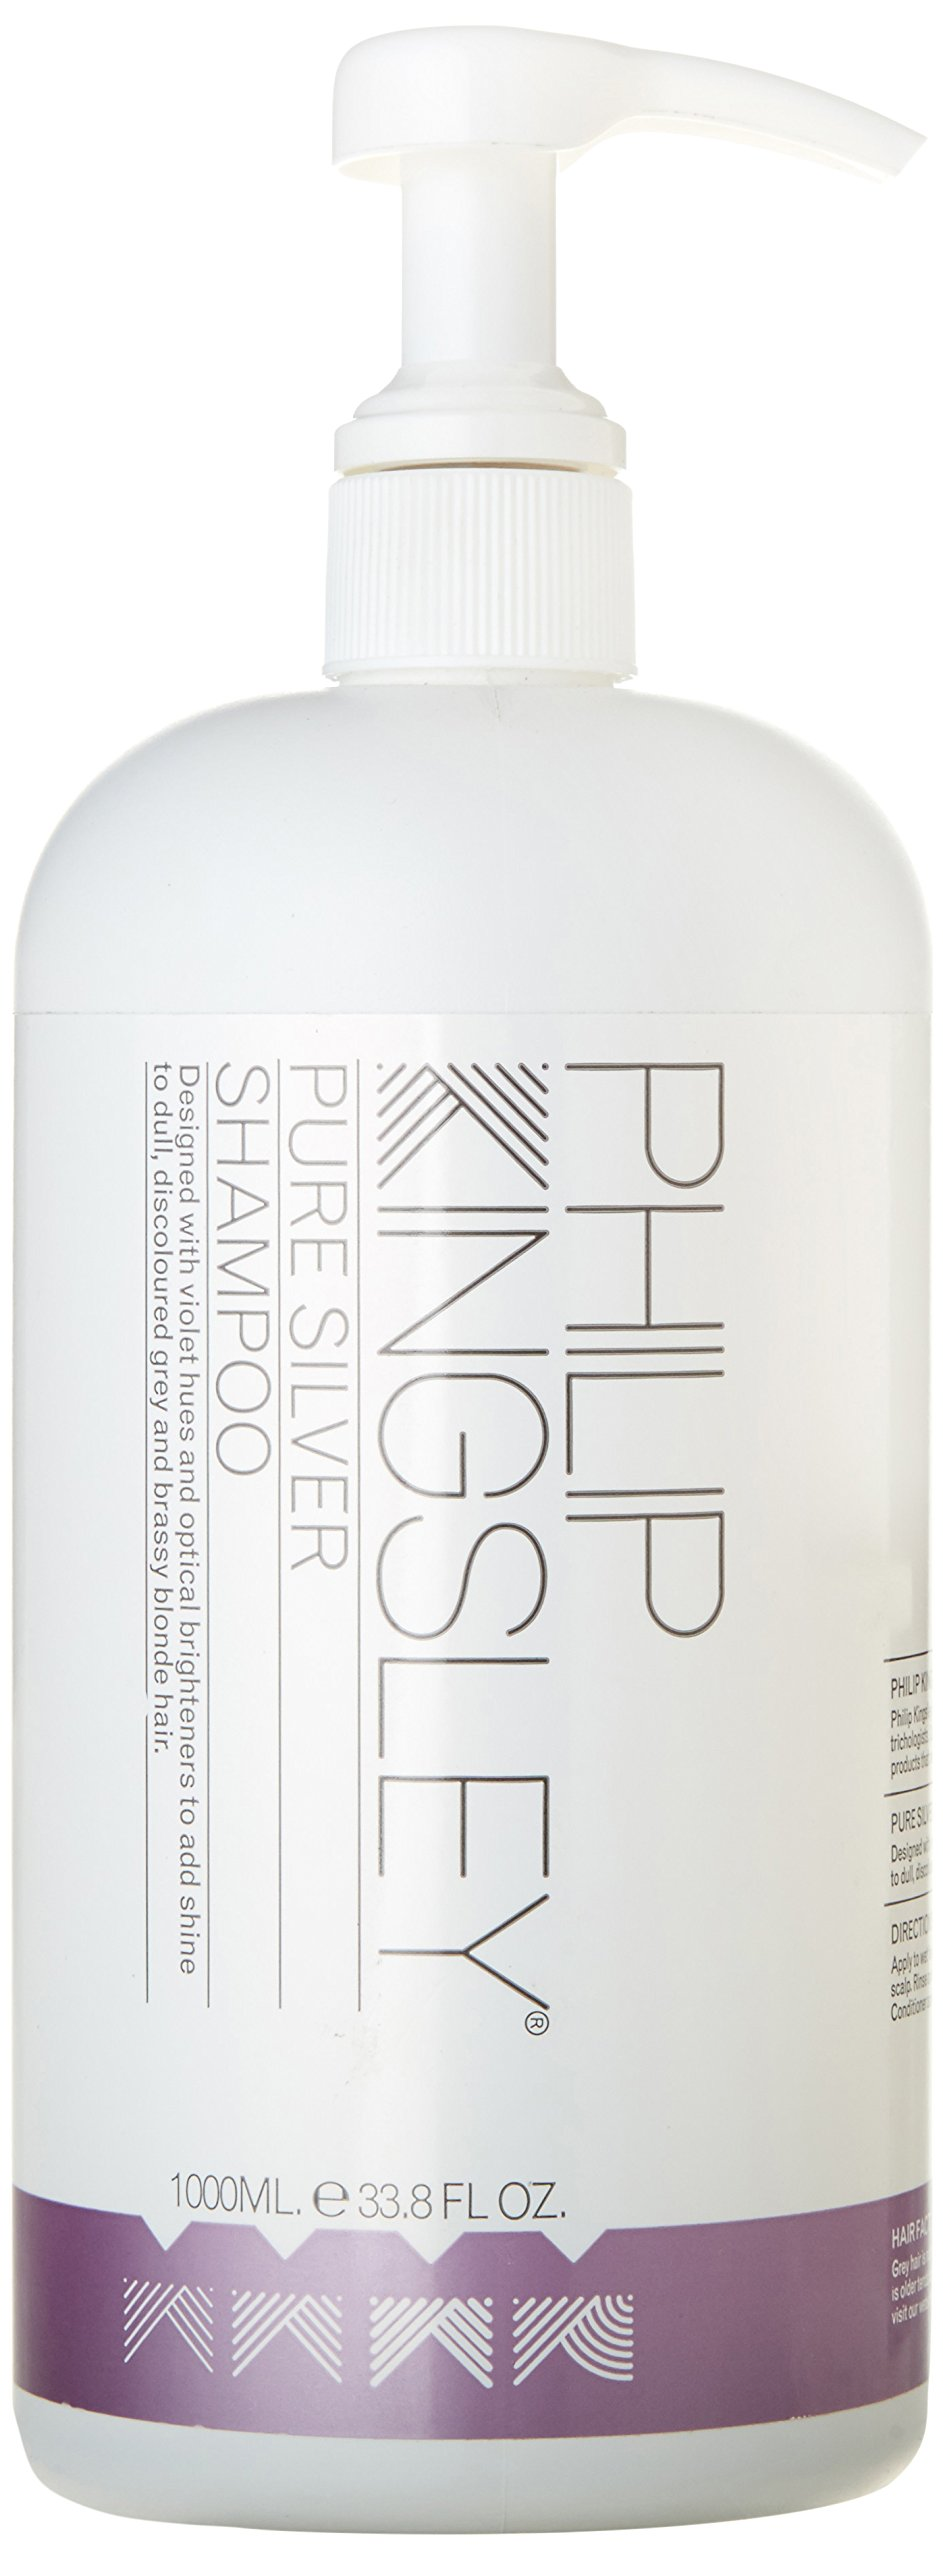 Philip Kingsley Pure Silver Shampoo for Dull, Discoloured Grey Hair and Brassy Blonde Hair, 33.8 Ounce by Philip Kingsley